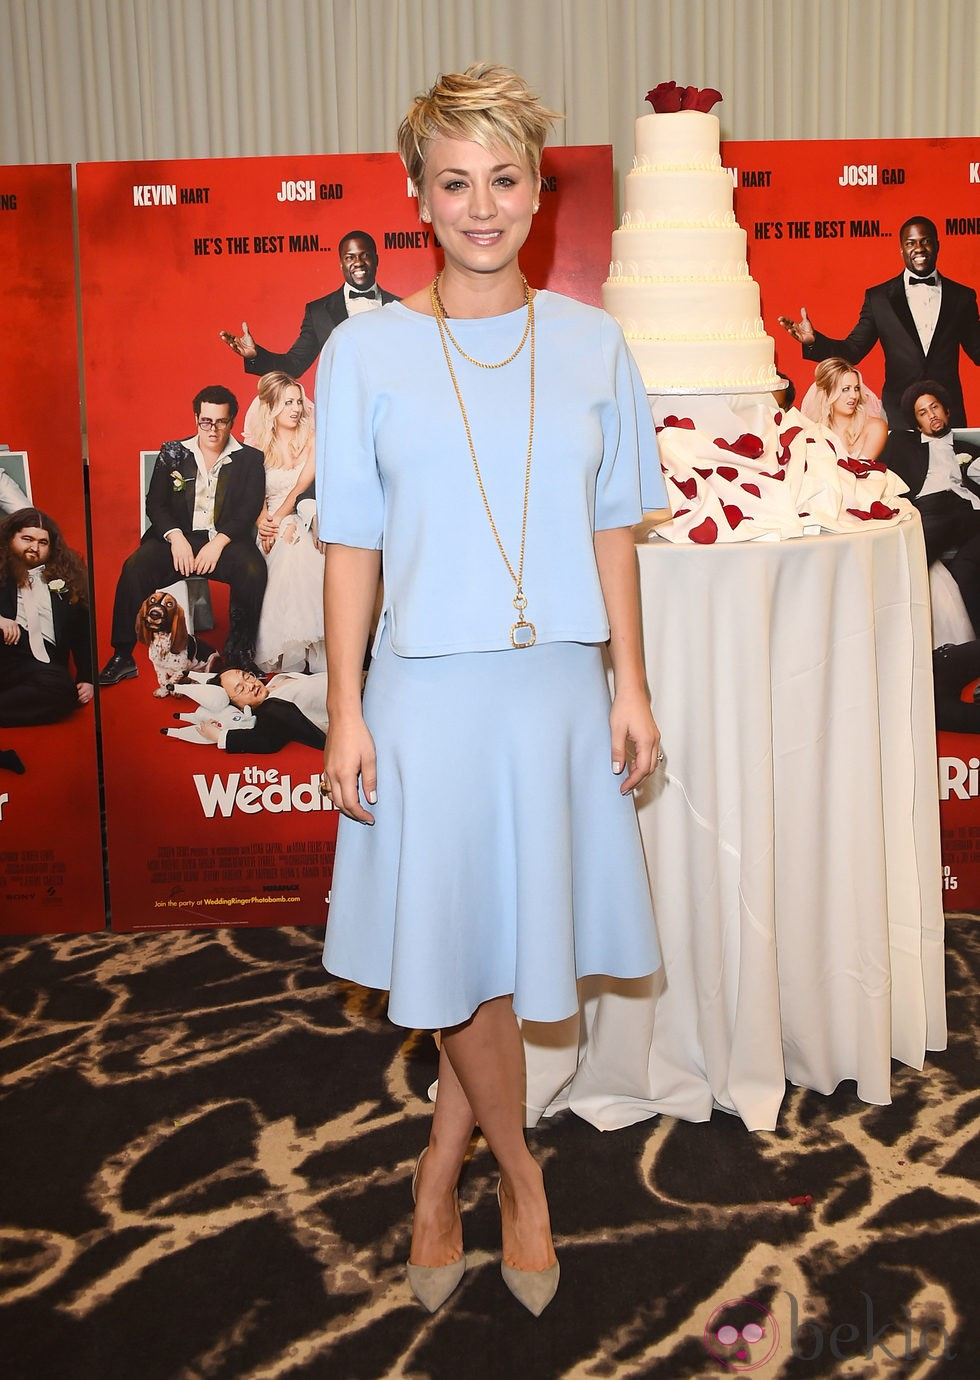 Kaley Cuoco asiste a la presentación de 'The Wedding Ringer' en Los Angeles